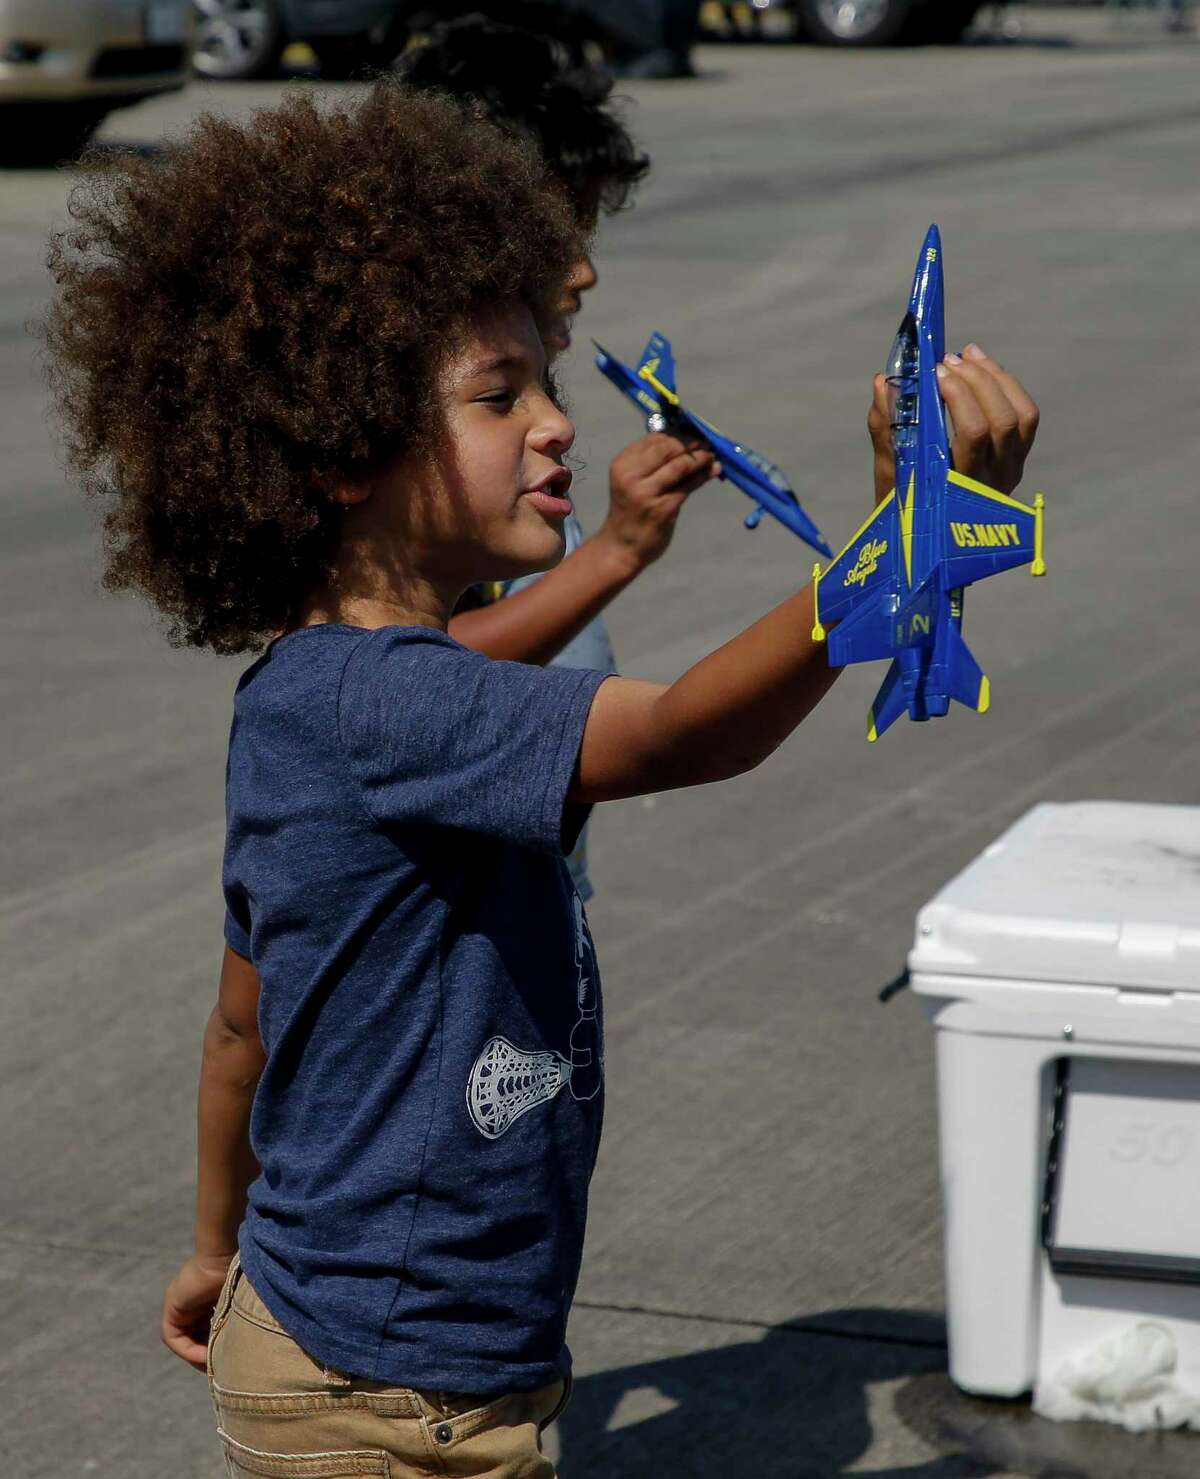 Gideon Thomson, 5, plays with a toy airplane while attending this year's Wings Over Houston airshow at Ellington Airport on Saturday, Oct. 10, 2020, in Houston.